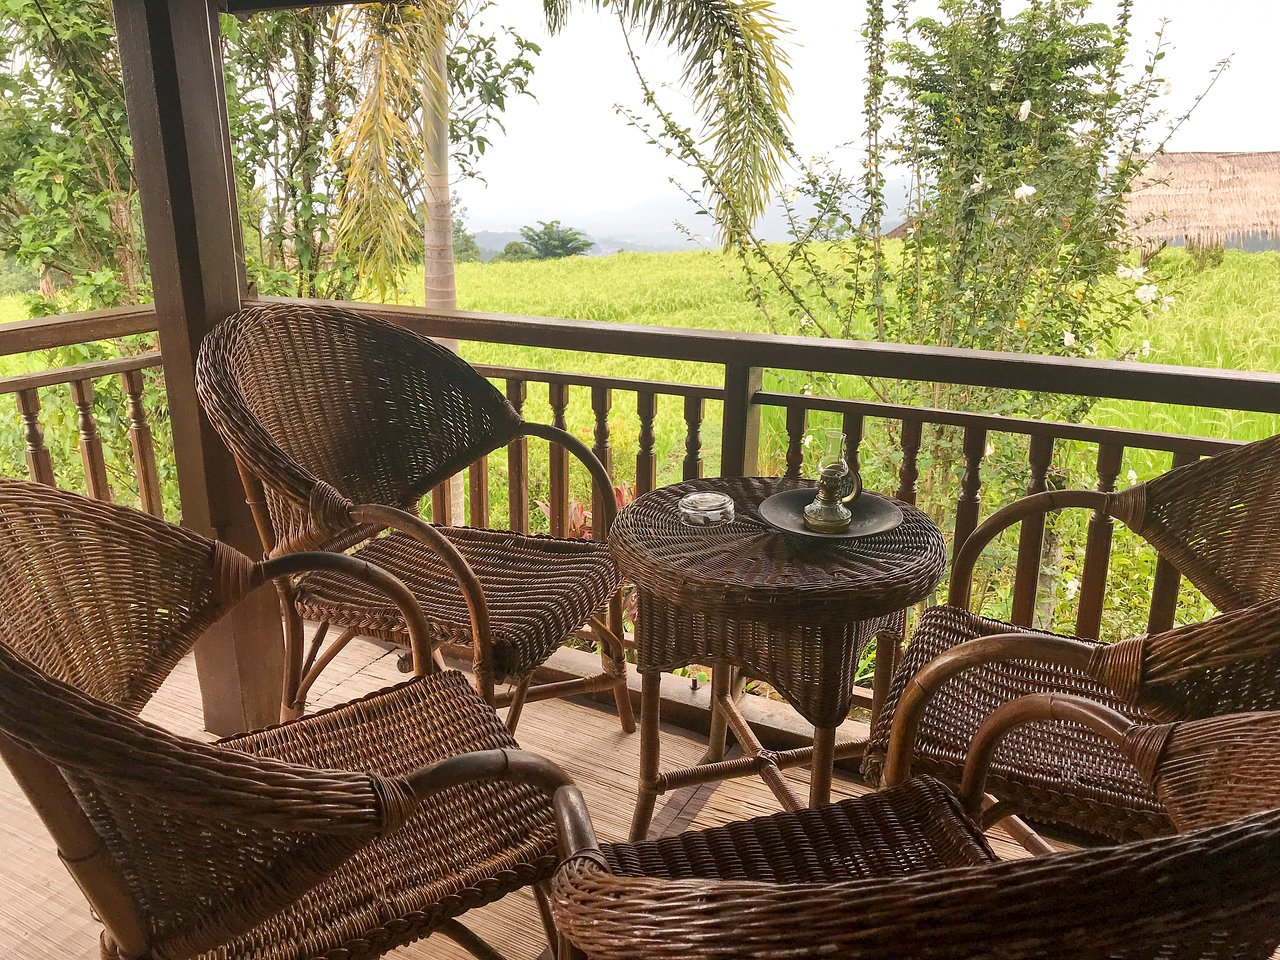 PURI LUMBUNG COTTAGES 47 54 Updated